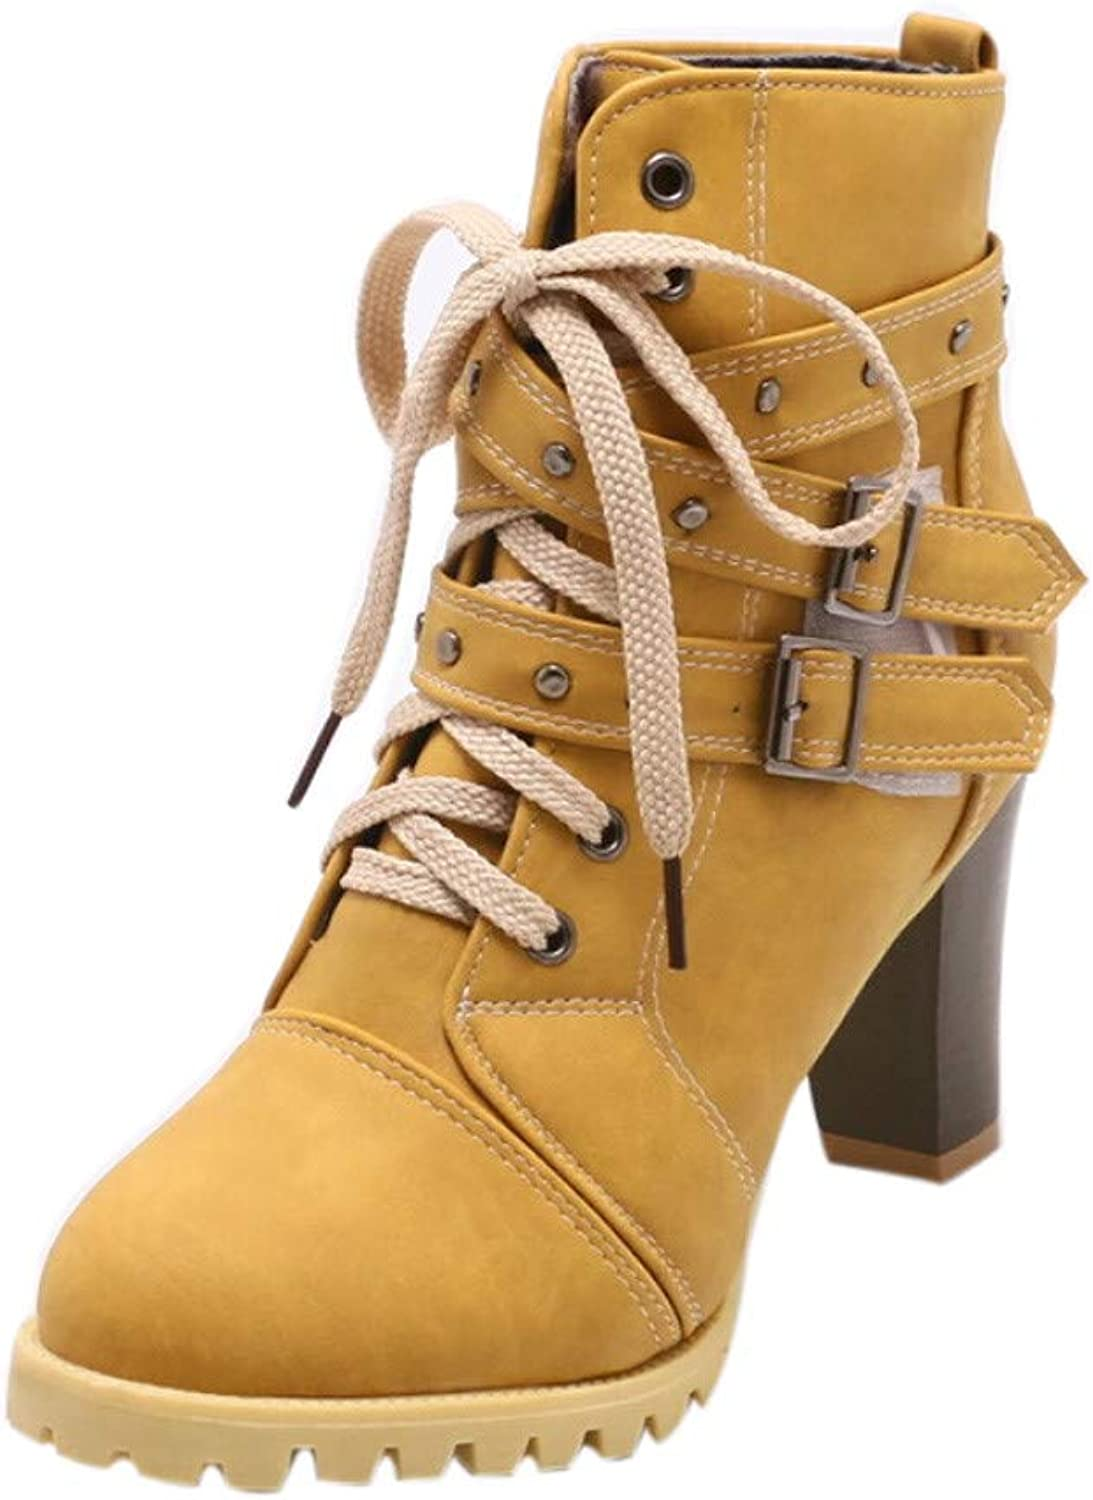 Fullfun Ankle Boots for Women High Heels Female Lace Up shoes Woman Belt Buckle Rivet Short Boot Green